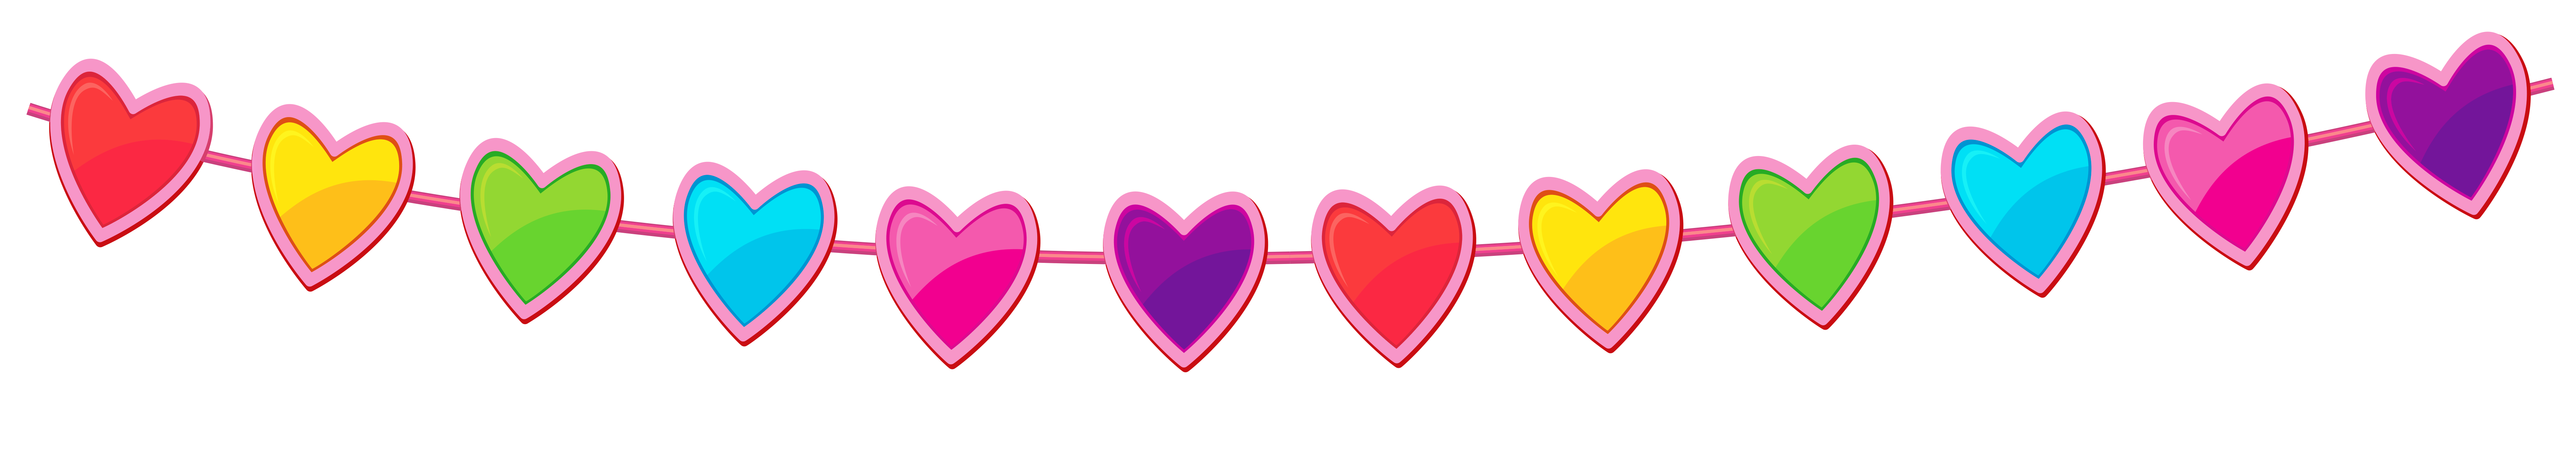 Line of hearts png. Transparent heart streamer clipart